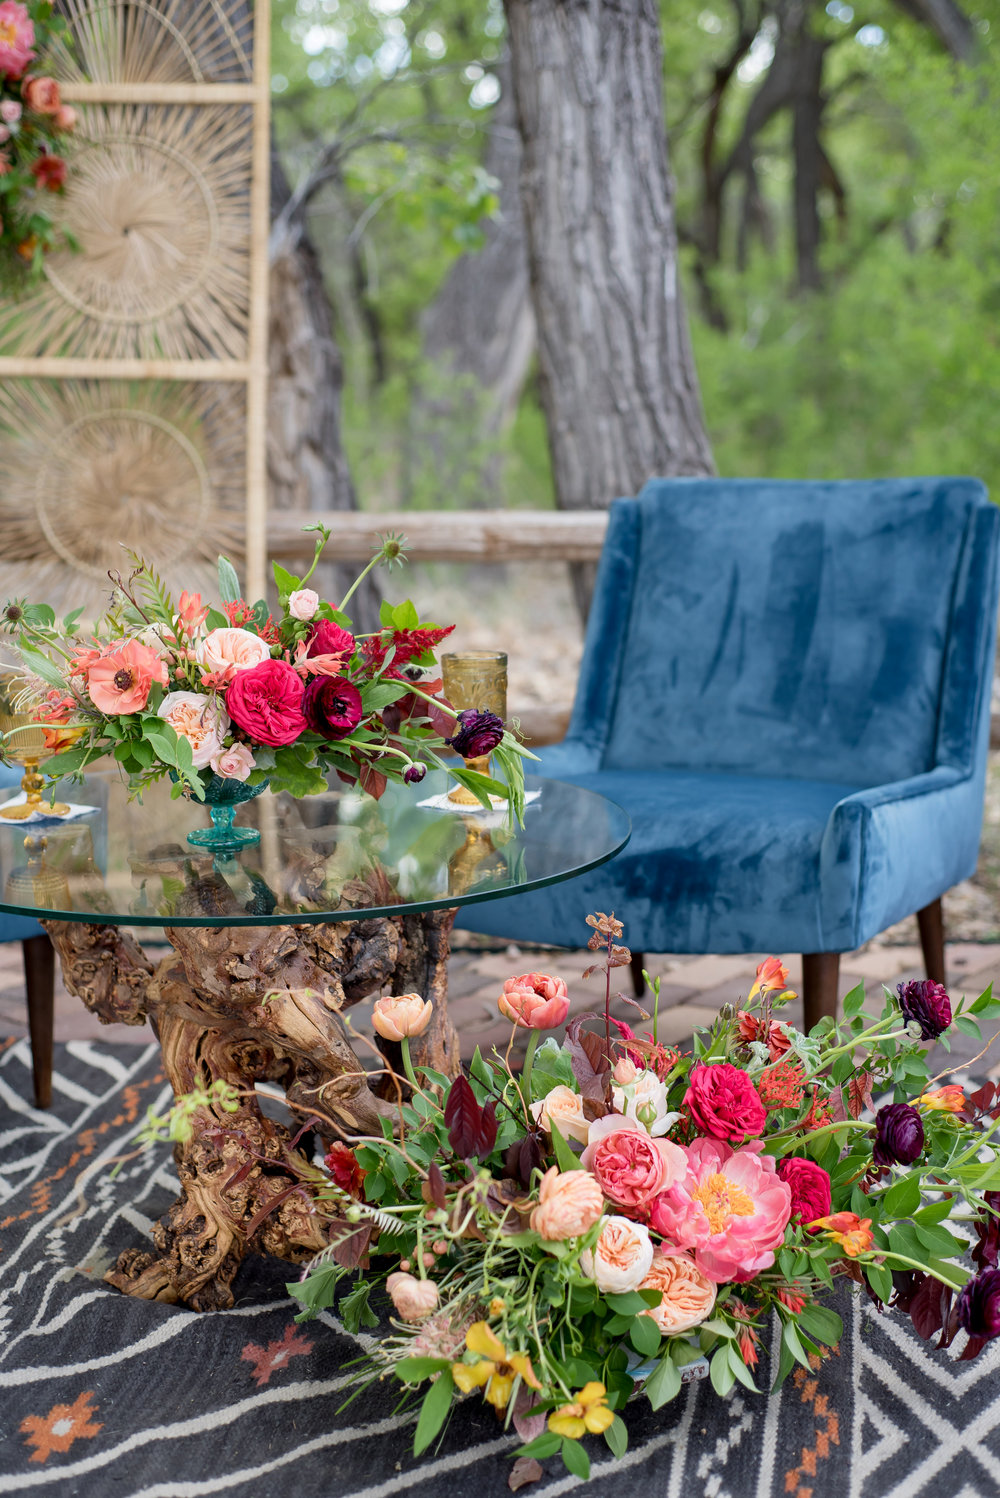 I am head over heels in looooooove with all of the gorgeous, lush florals that were included, and that knotted wood and glass side table??? To die for!!!